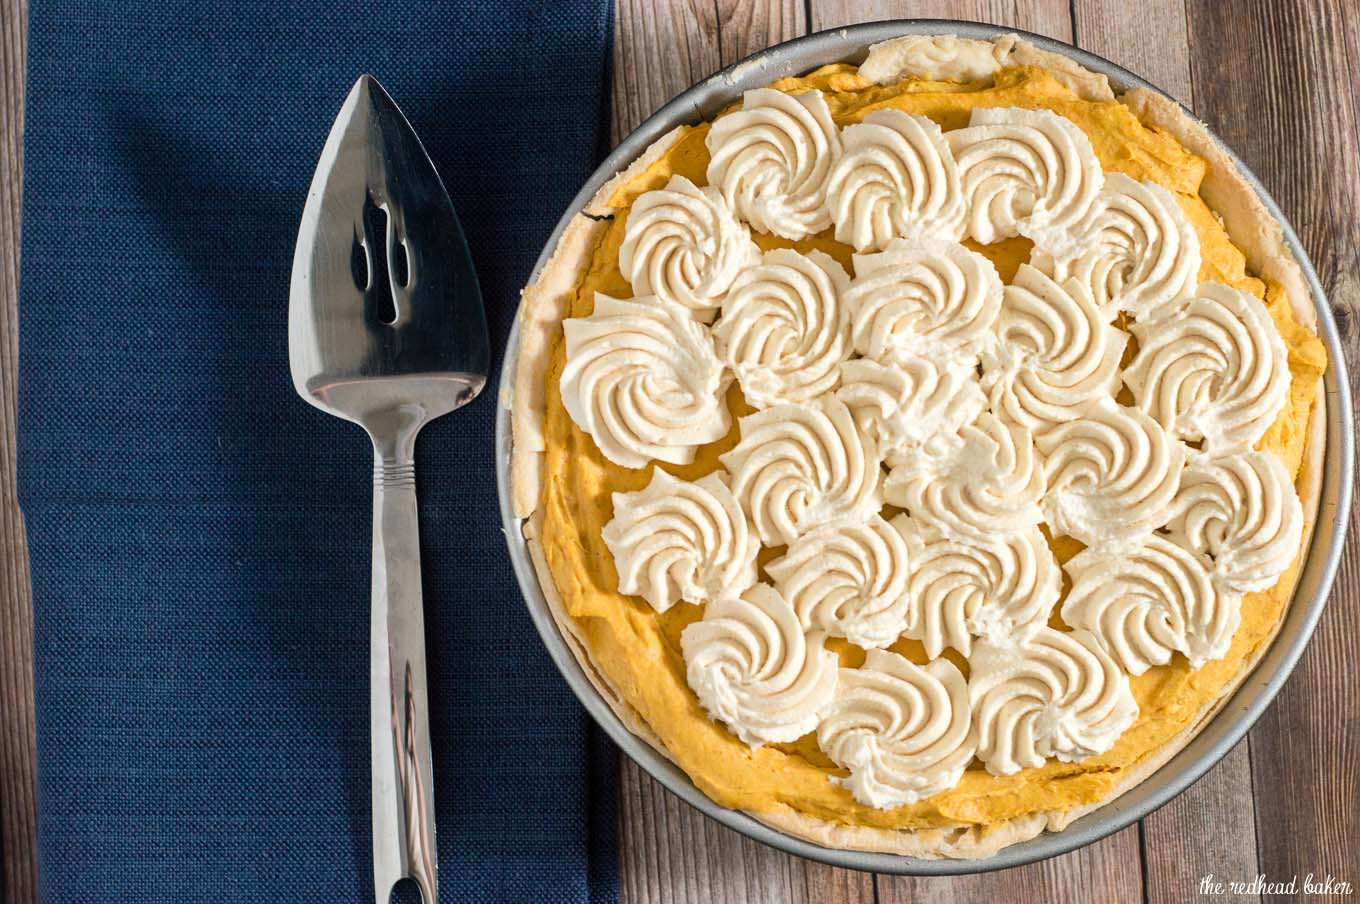 Pumpkin cream pie has all the flavor of classic pumpkin pie with a slightly different texture. It's topped with decadent salted caramel whipped cream.